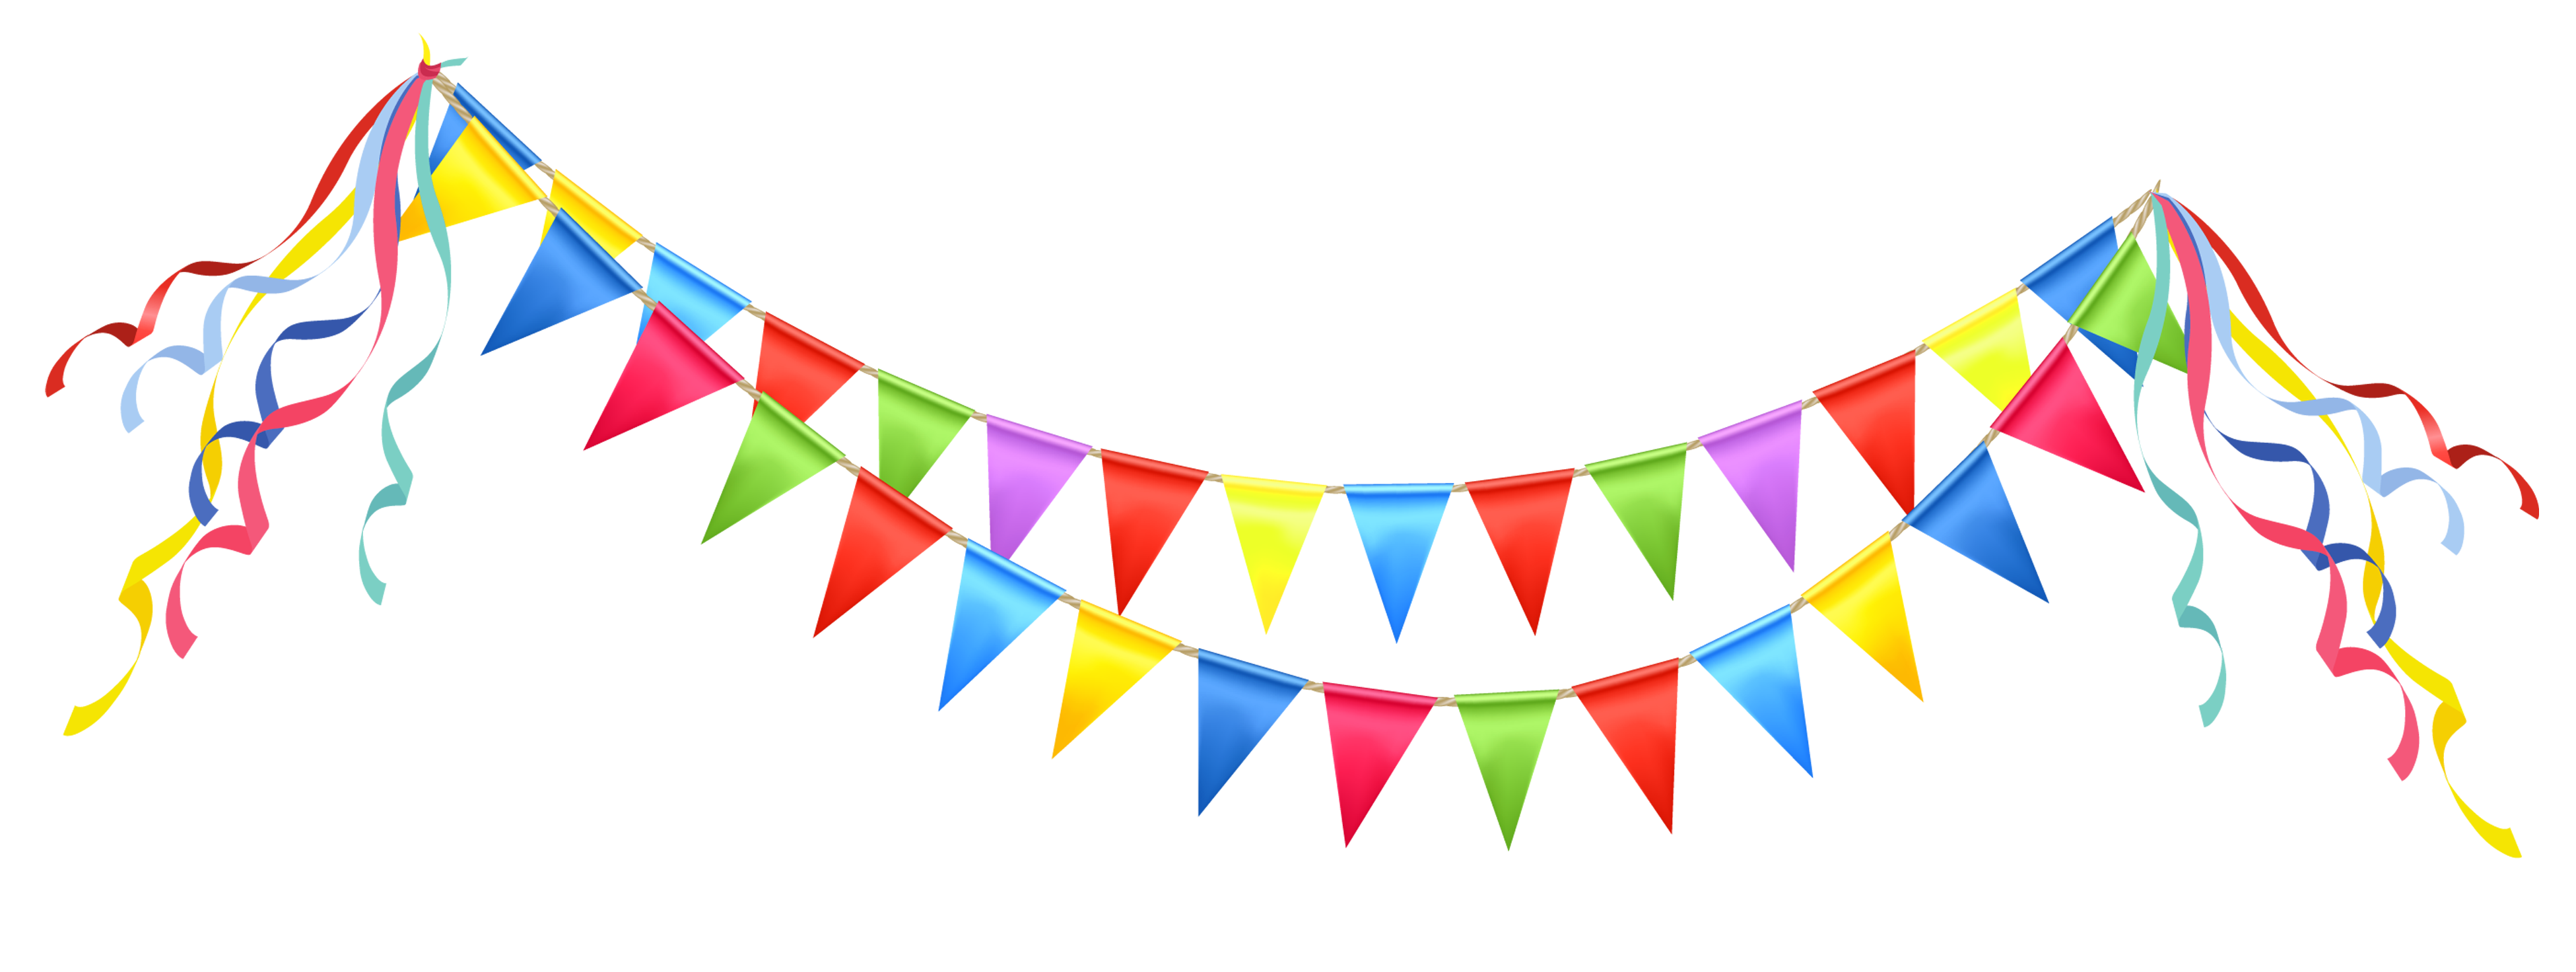 svg royalty free Parties clipart free download. Pennant vector